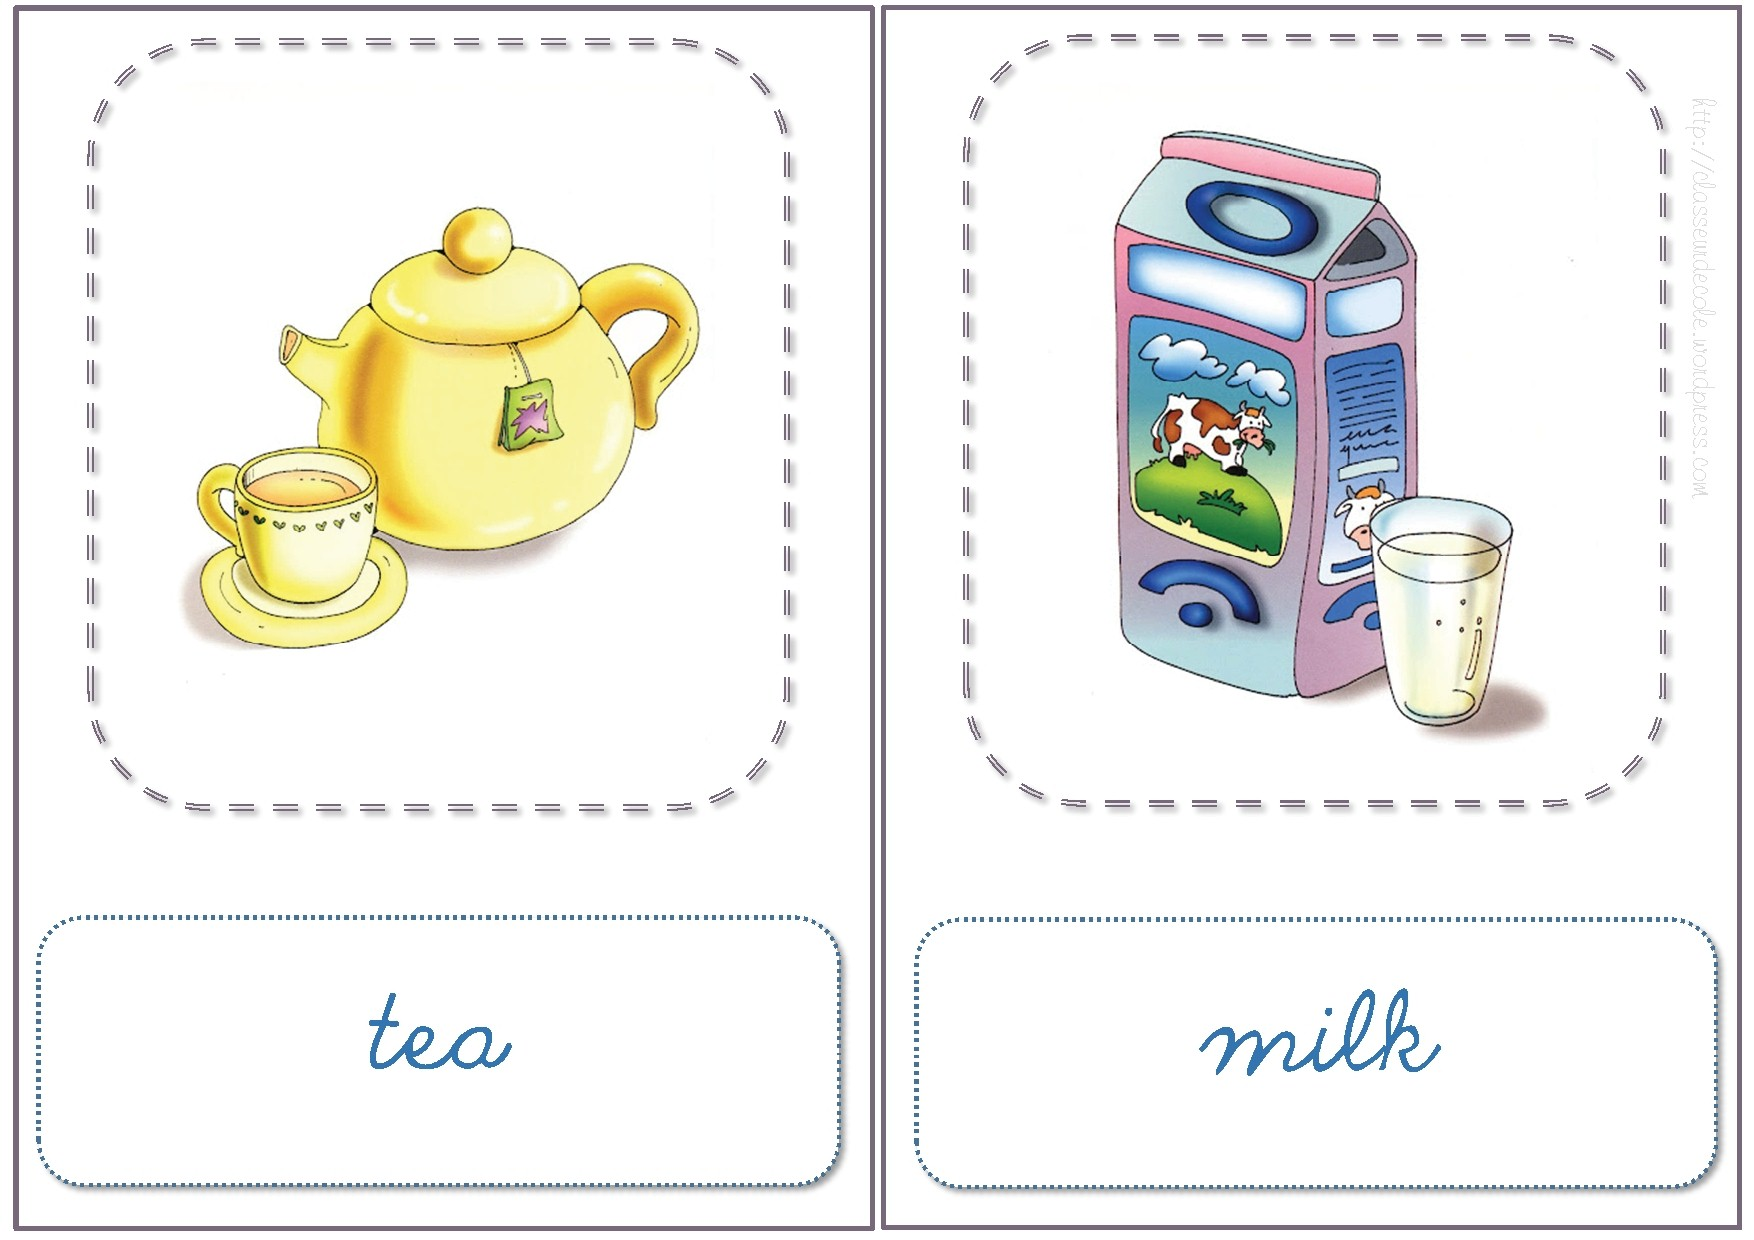 Connu Anglais -Flashcards FOOD and DRINK VJ13